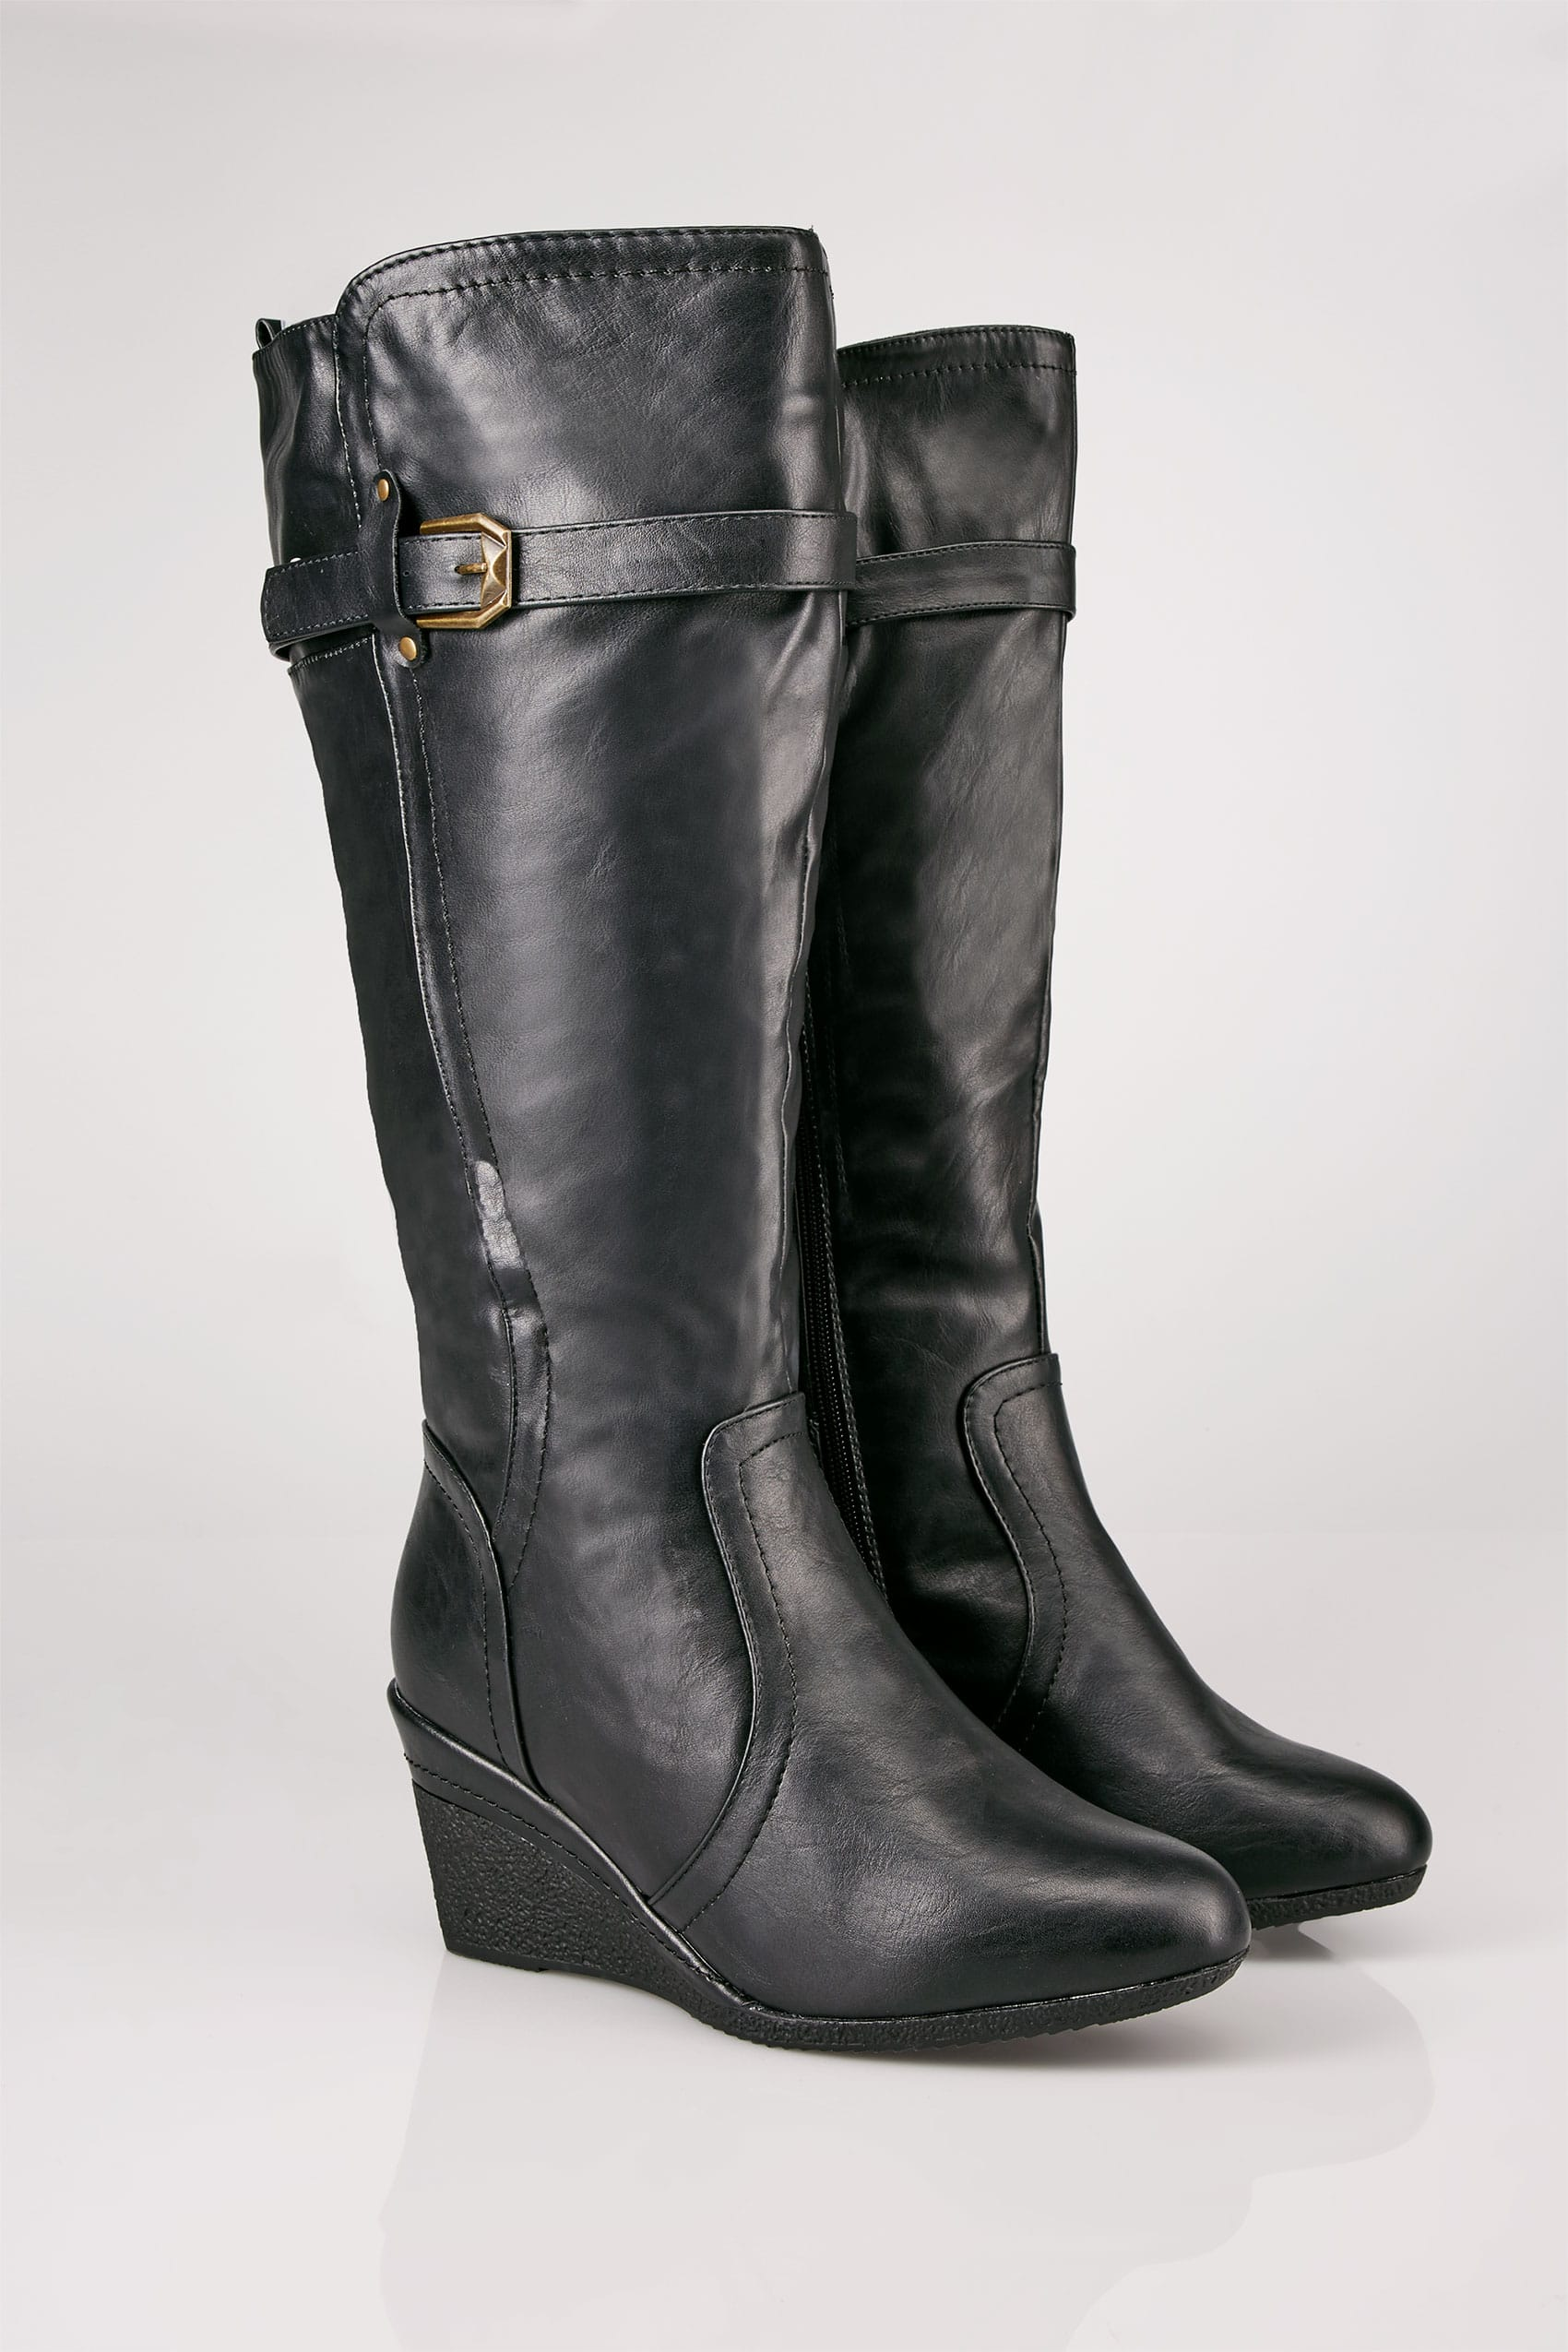 Plus Size Wide Calf Boots Black Calf Length Boots With Wedge Heel & Buckle  Details In · Basket Buy